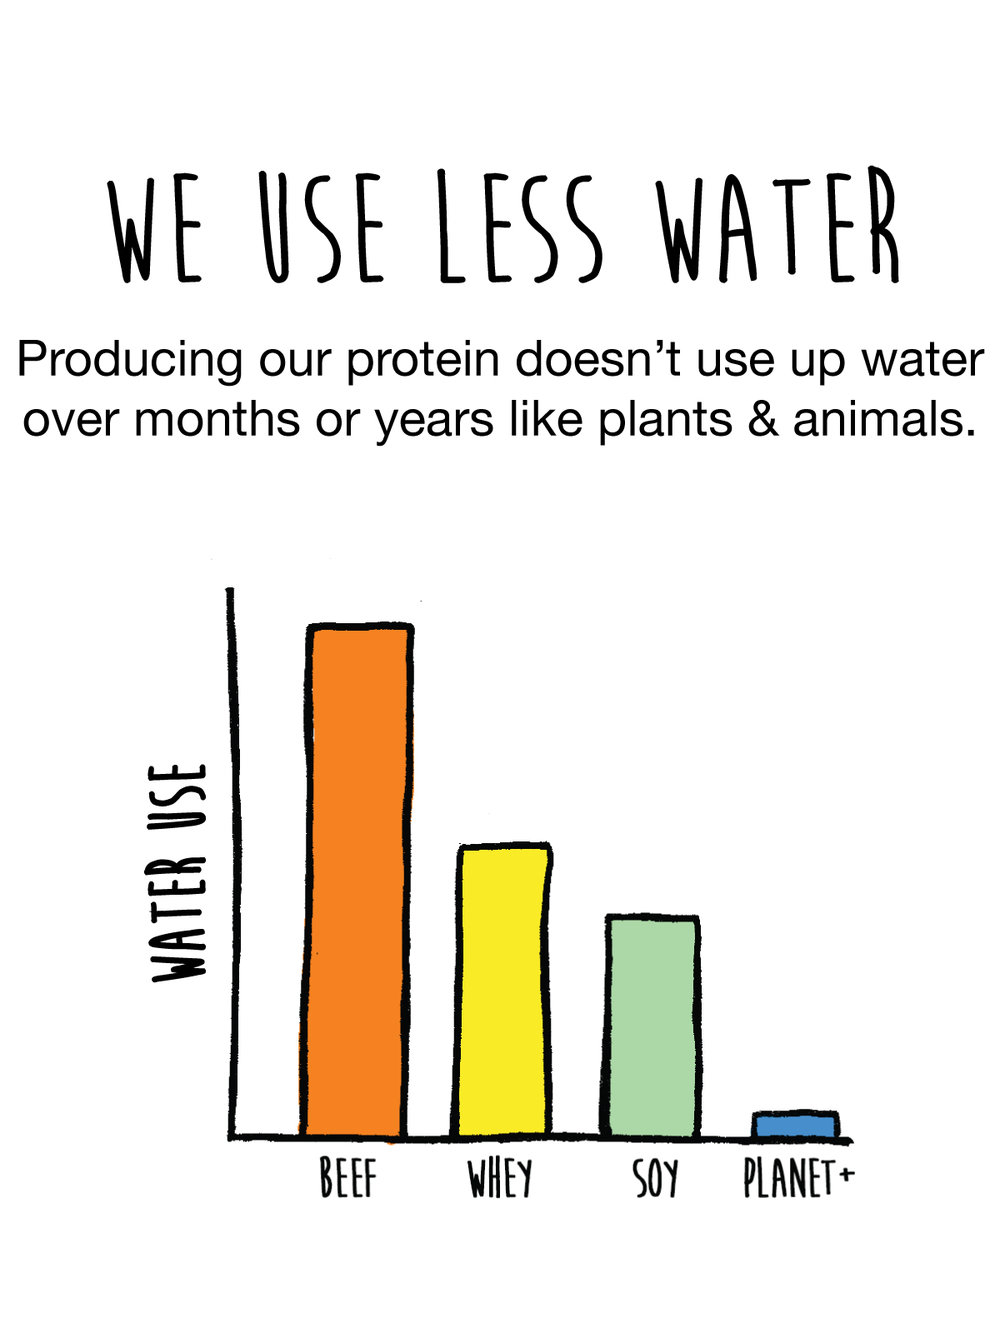 Producing our protein doesn't use up water over months or years like plants and animals.